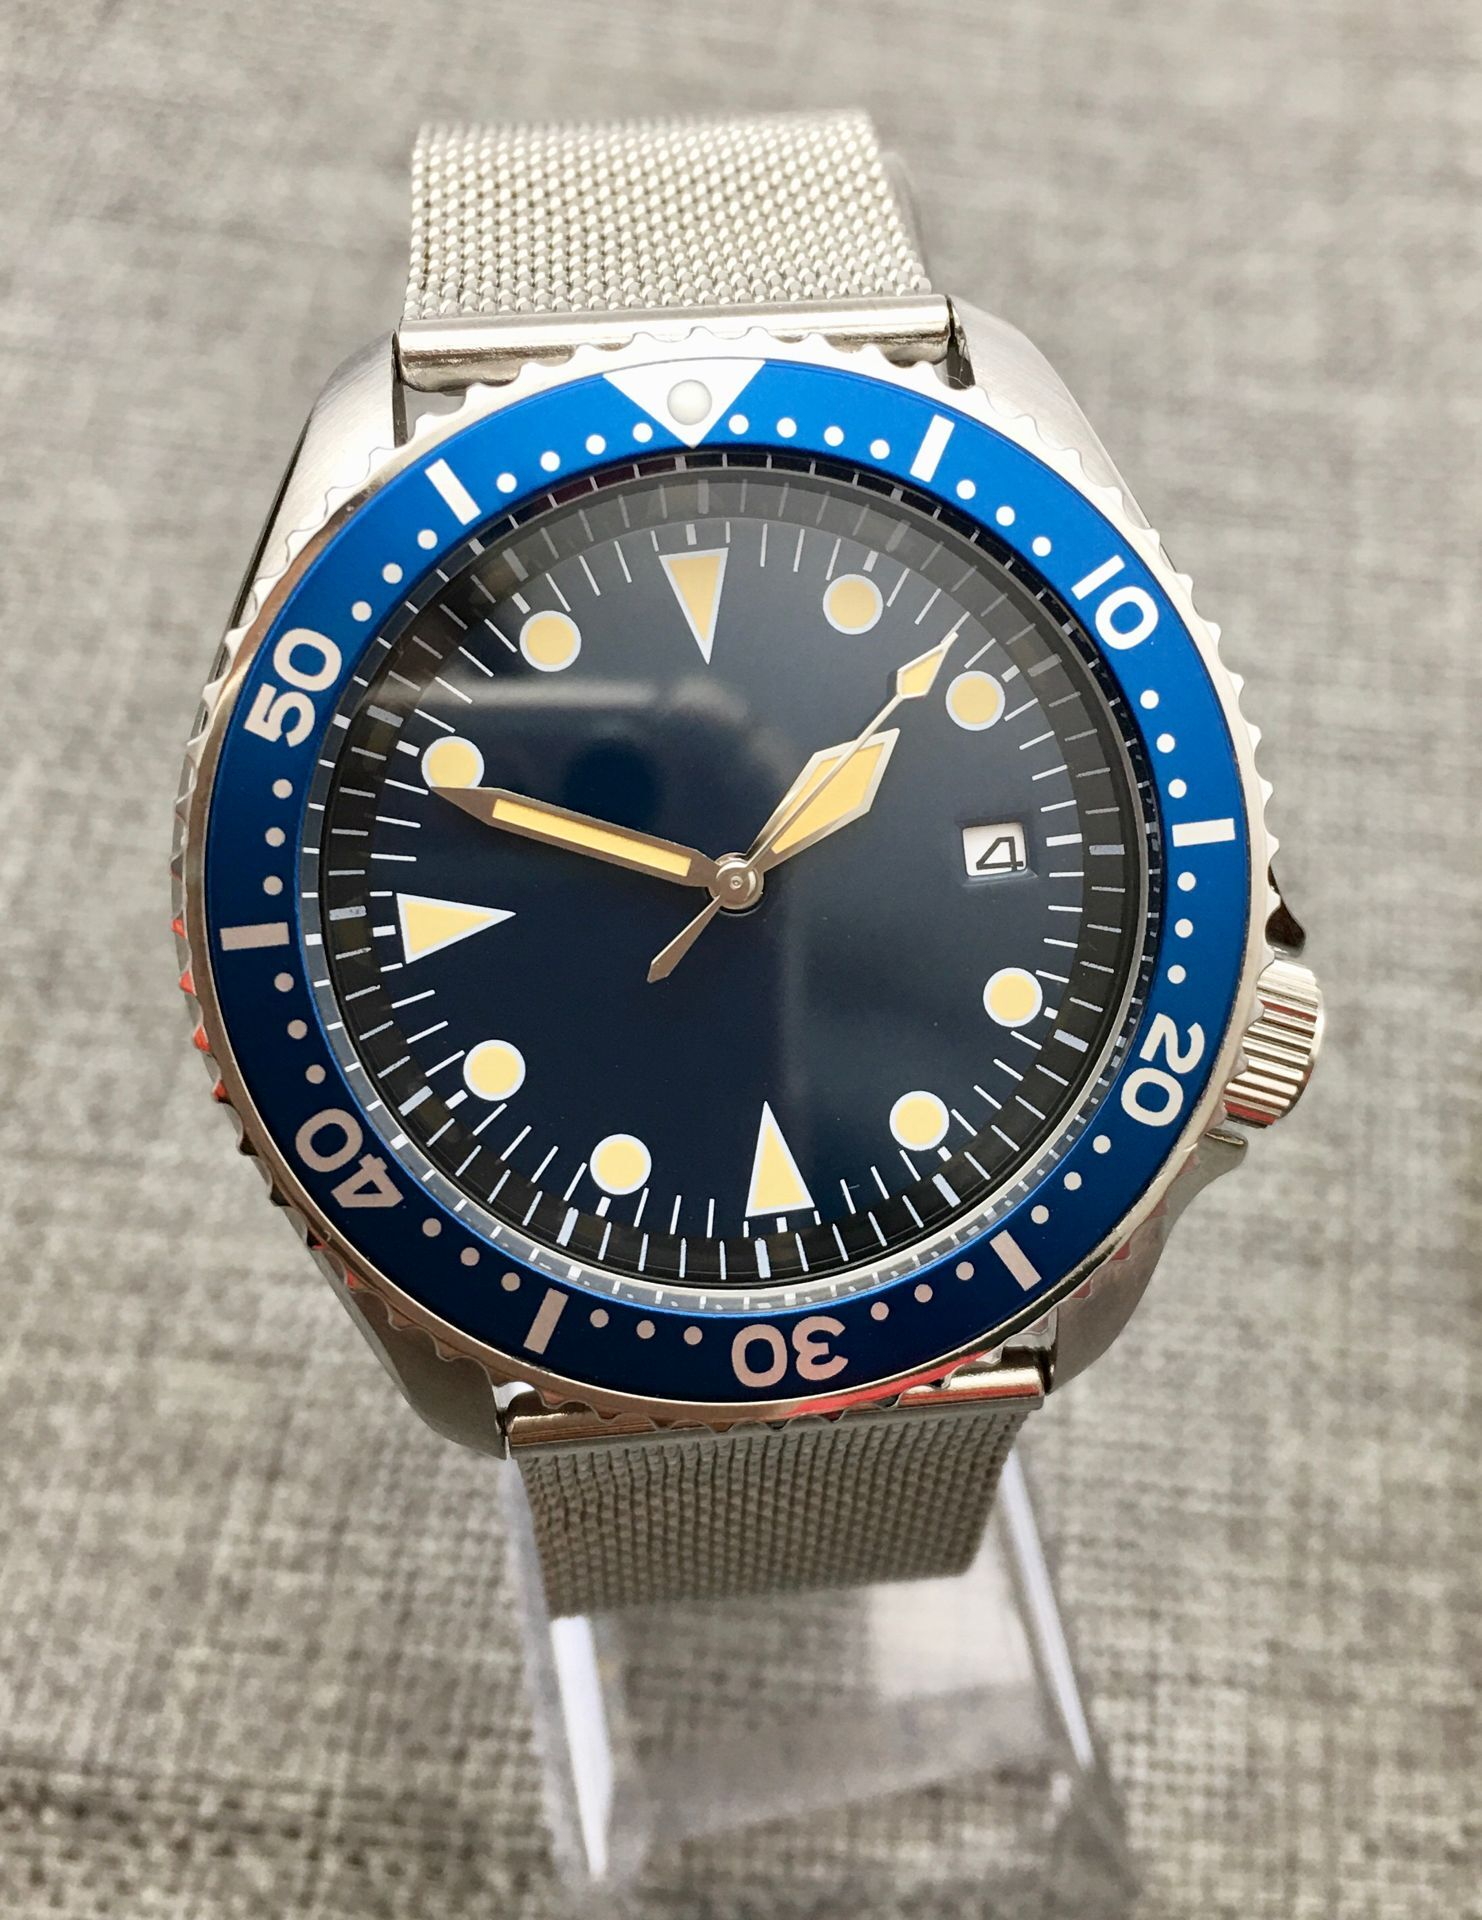 42MM SK007 Stainless Steel Case Japanese Movement NH35 Watch Mechanical Clock Luminous Blue Dial Automatic Men's Watch